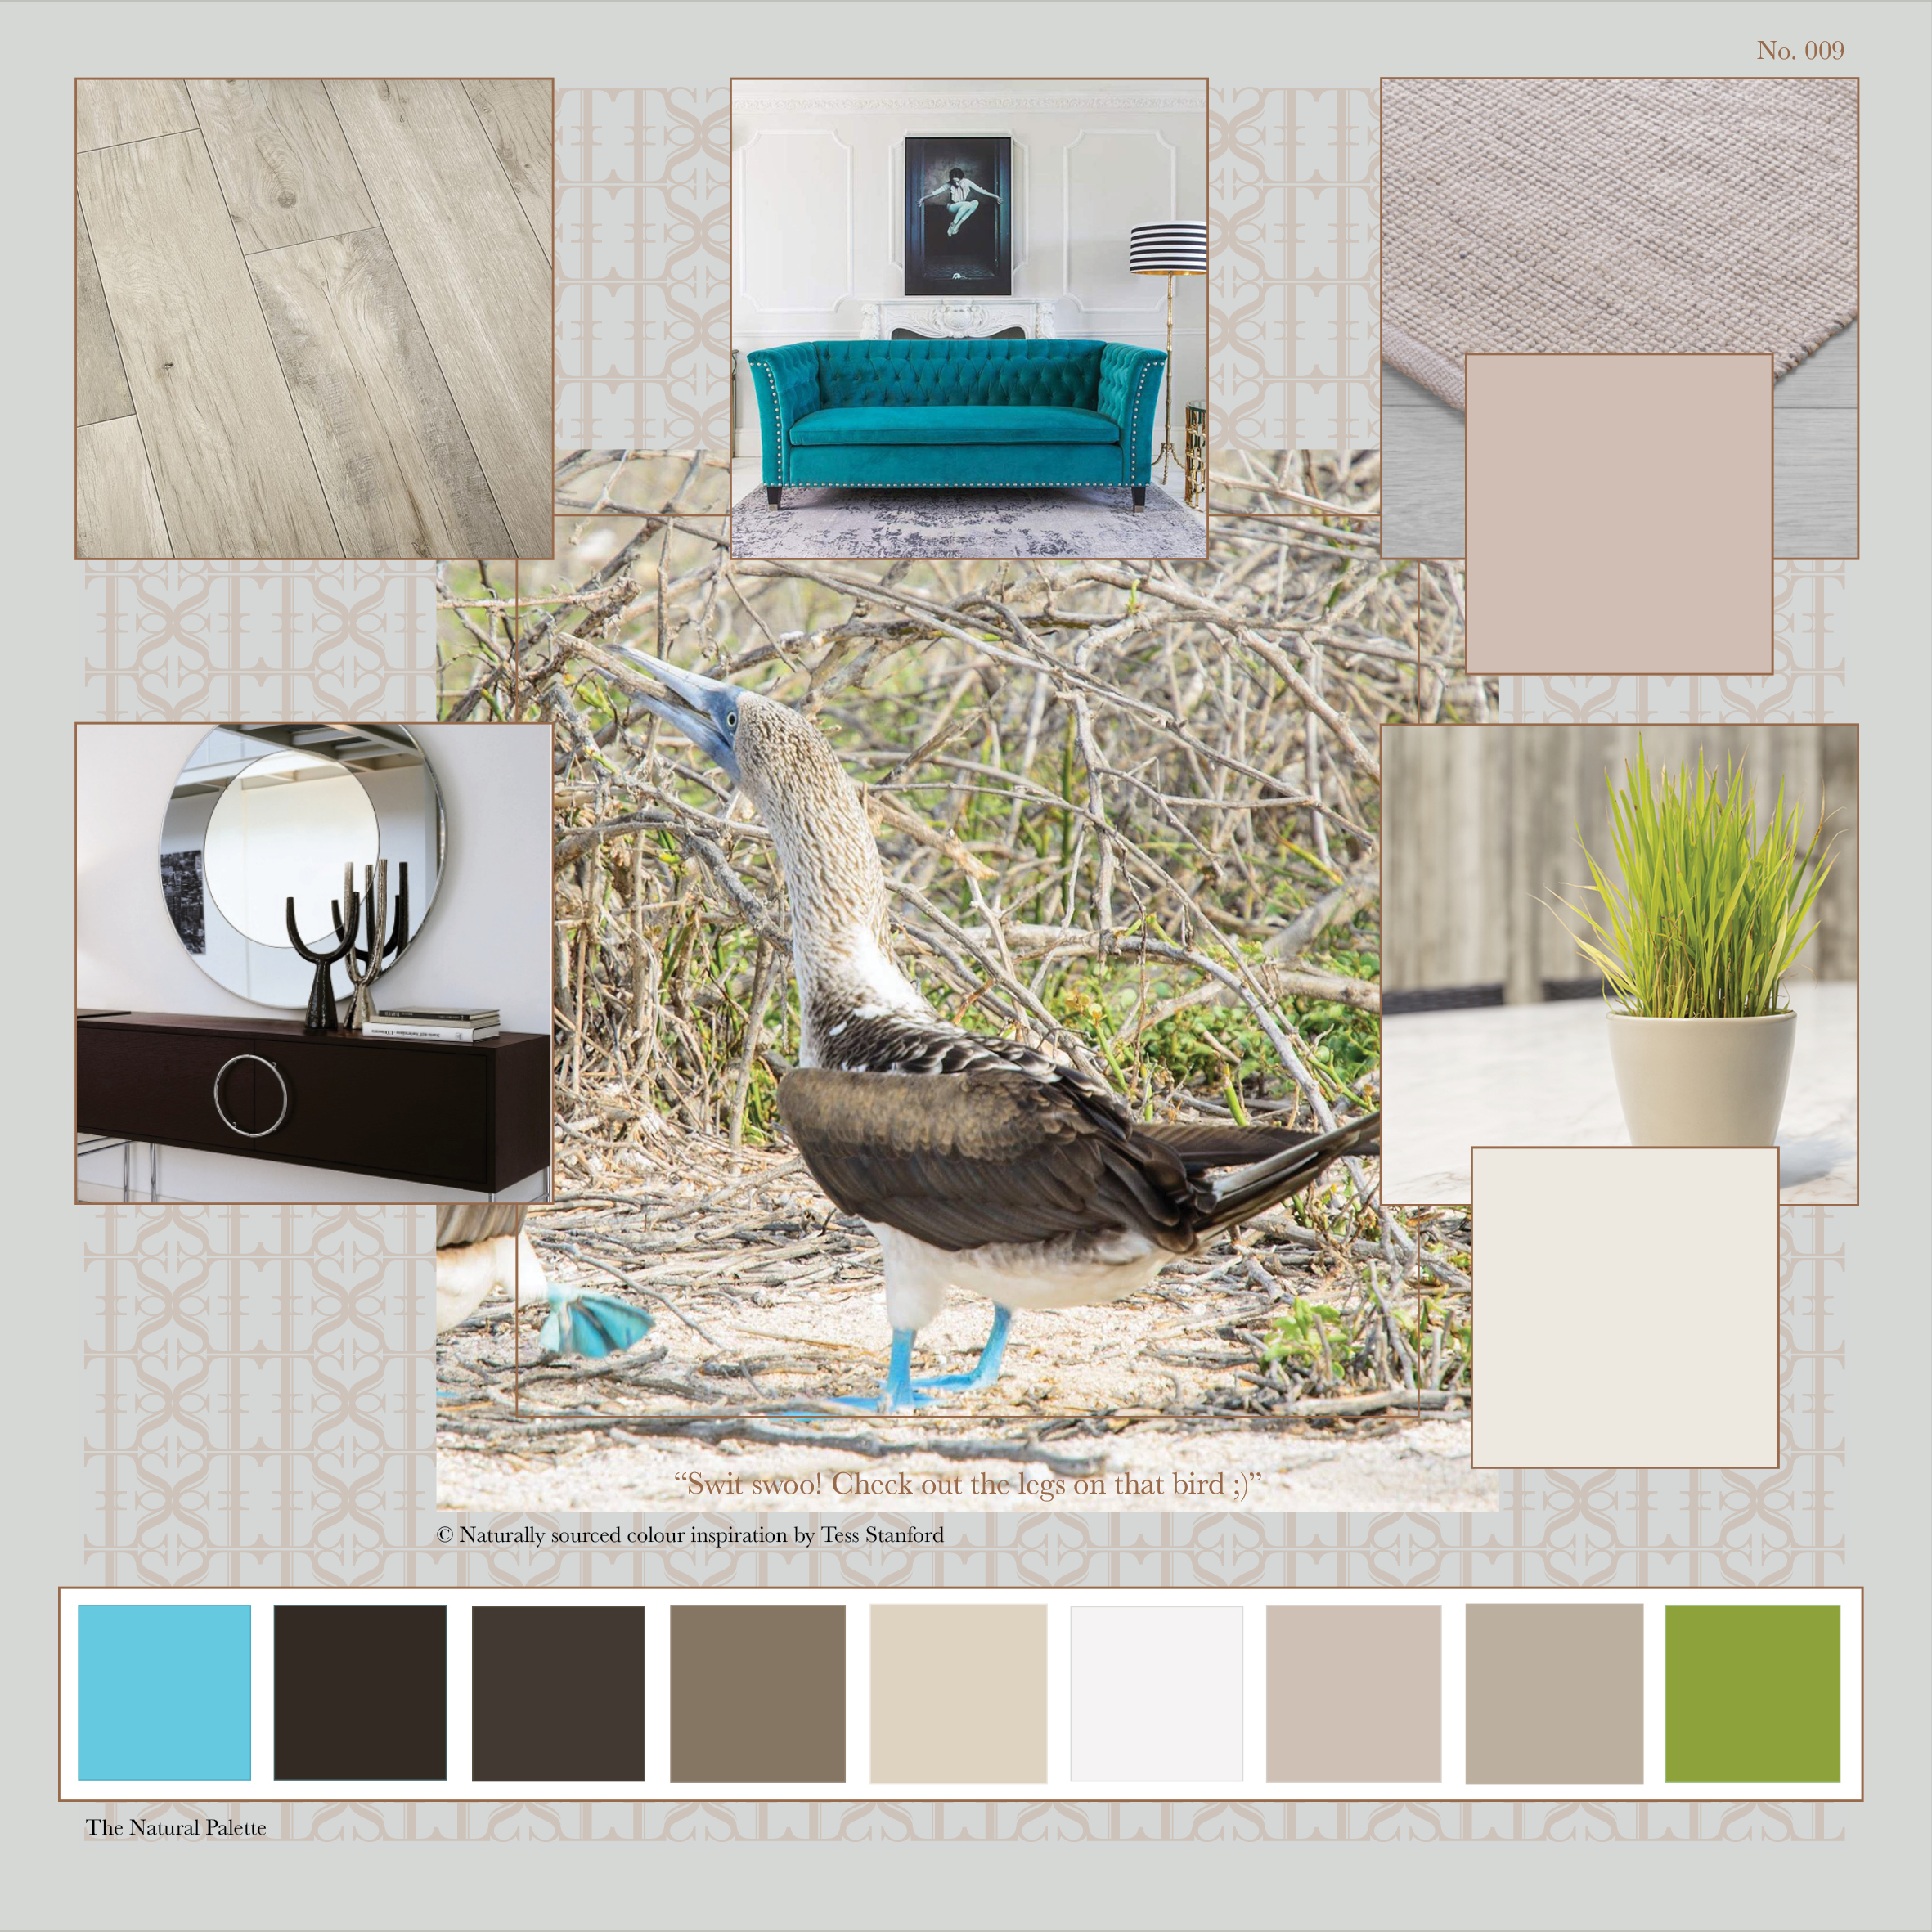 Tess Stanford Interior Design Colour Inspiration Blog No 007